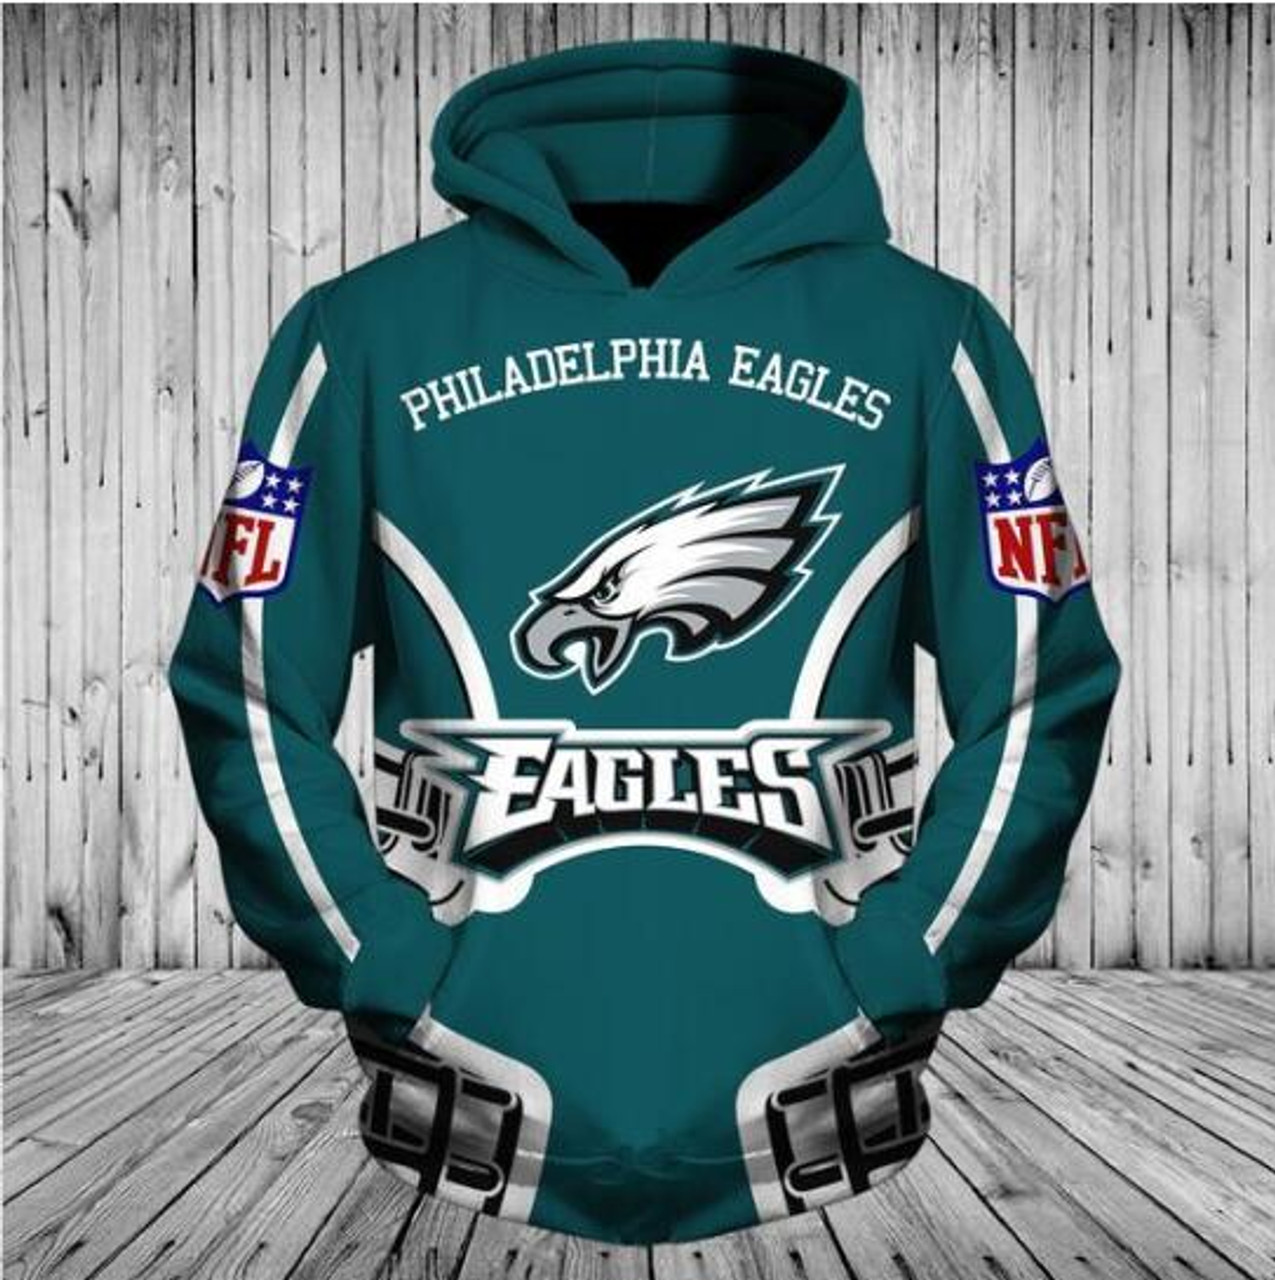 **(OFFICIALLY-LICENSED-N.F.L.PHILADELPHIA-EAGLES-TRENDY-PULLOVER-TEAM-HOODIES/NICE-CUSTOM-3D-GRAPHIC-PRINTED-DOUBLE-SIDED-ALL-OVER-OFFICIAL-EAGLES-LOGOS,IN-EAGLES-TEAM-COLORS/WARM-PREMIUM-OFFICIAL-N.F.L.EAGLES-TEAM-PULLOVER-POCKET-HOODIES)**